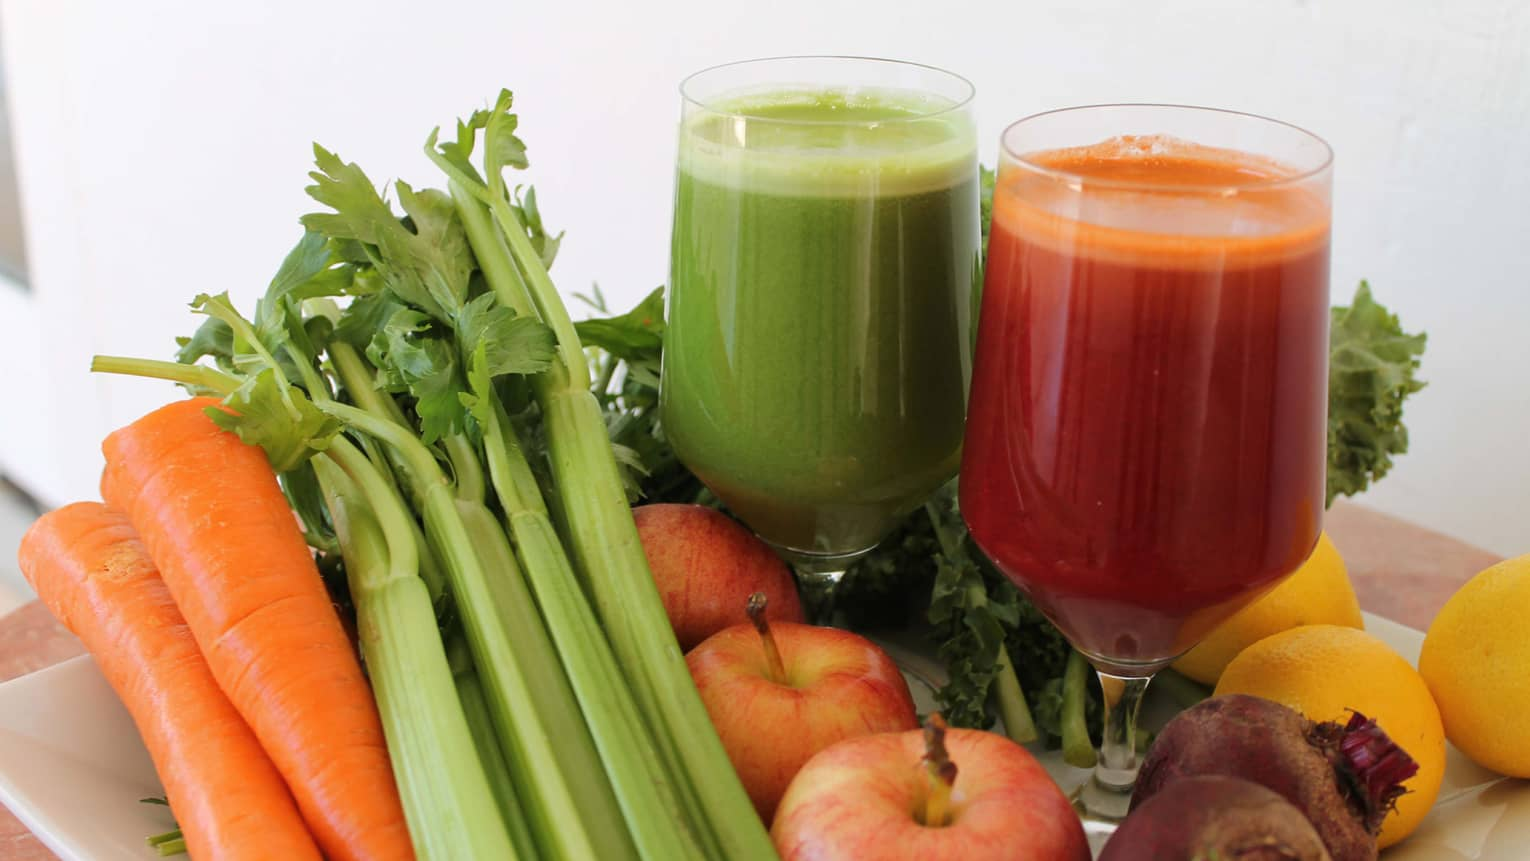 Fresh orange, green juices in glasses next to celery, carrots, apples, beets, lemons